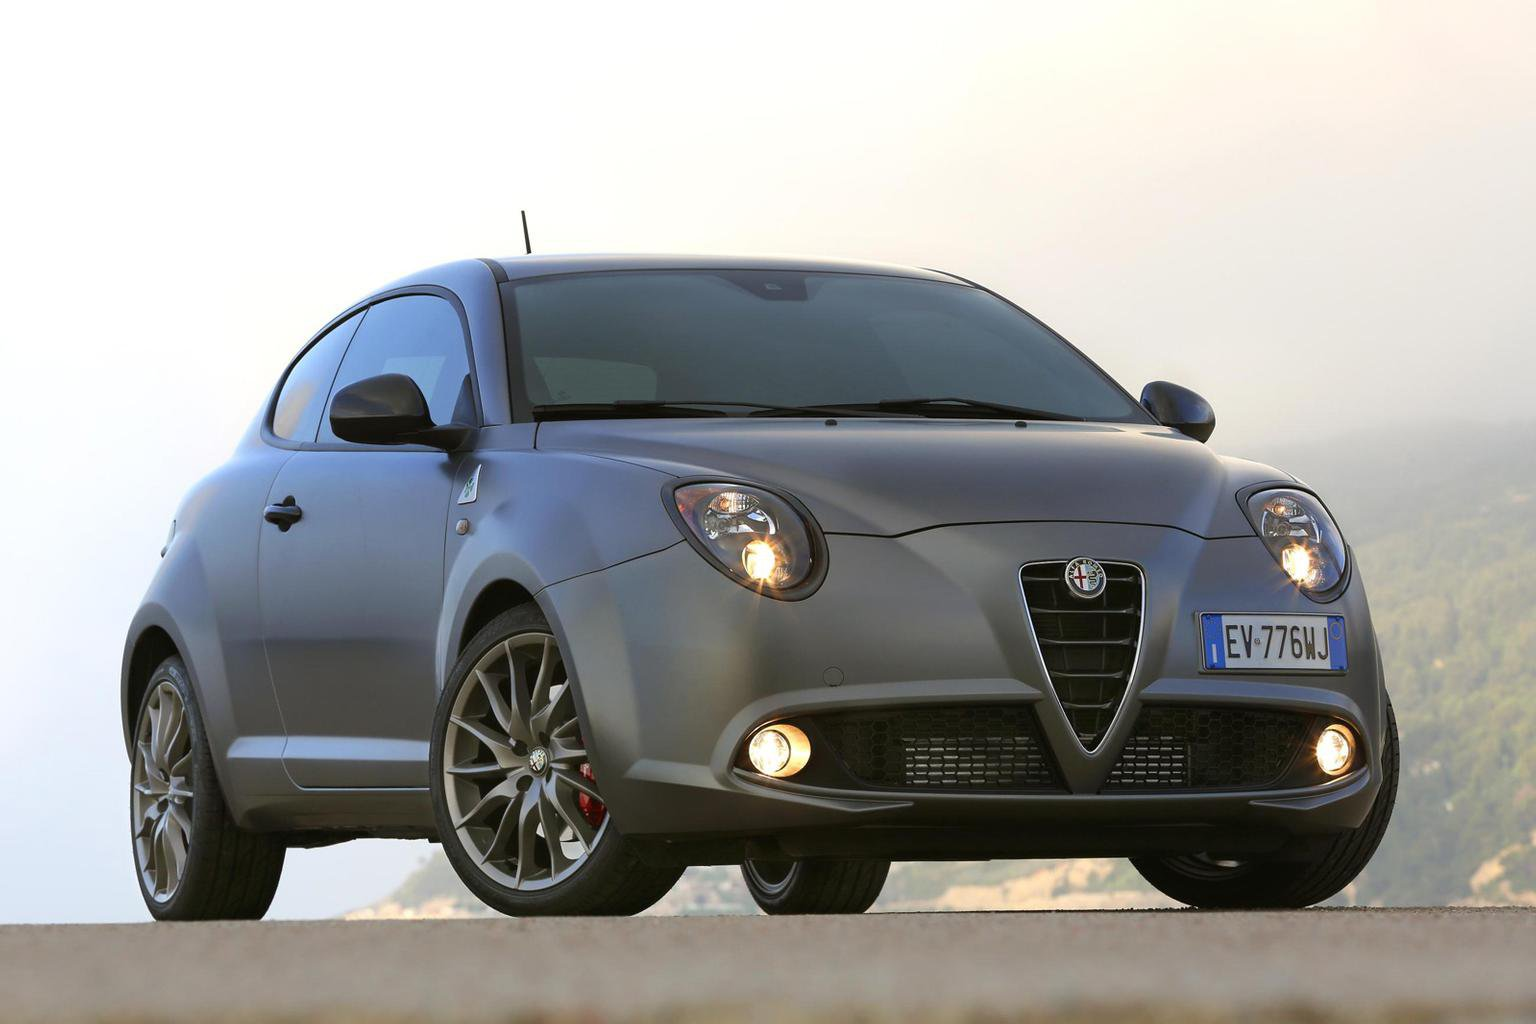 Alfa hot hatches priced from 20,210